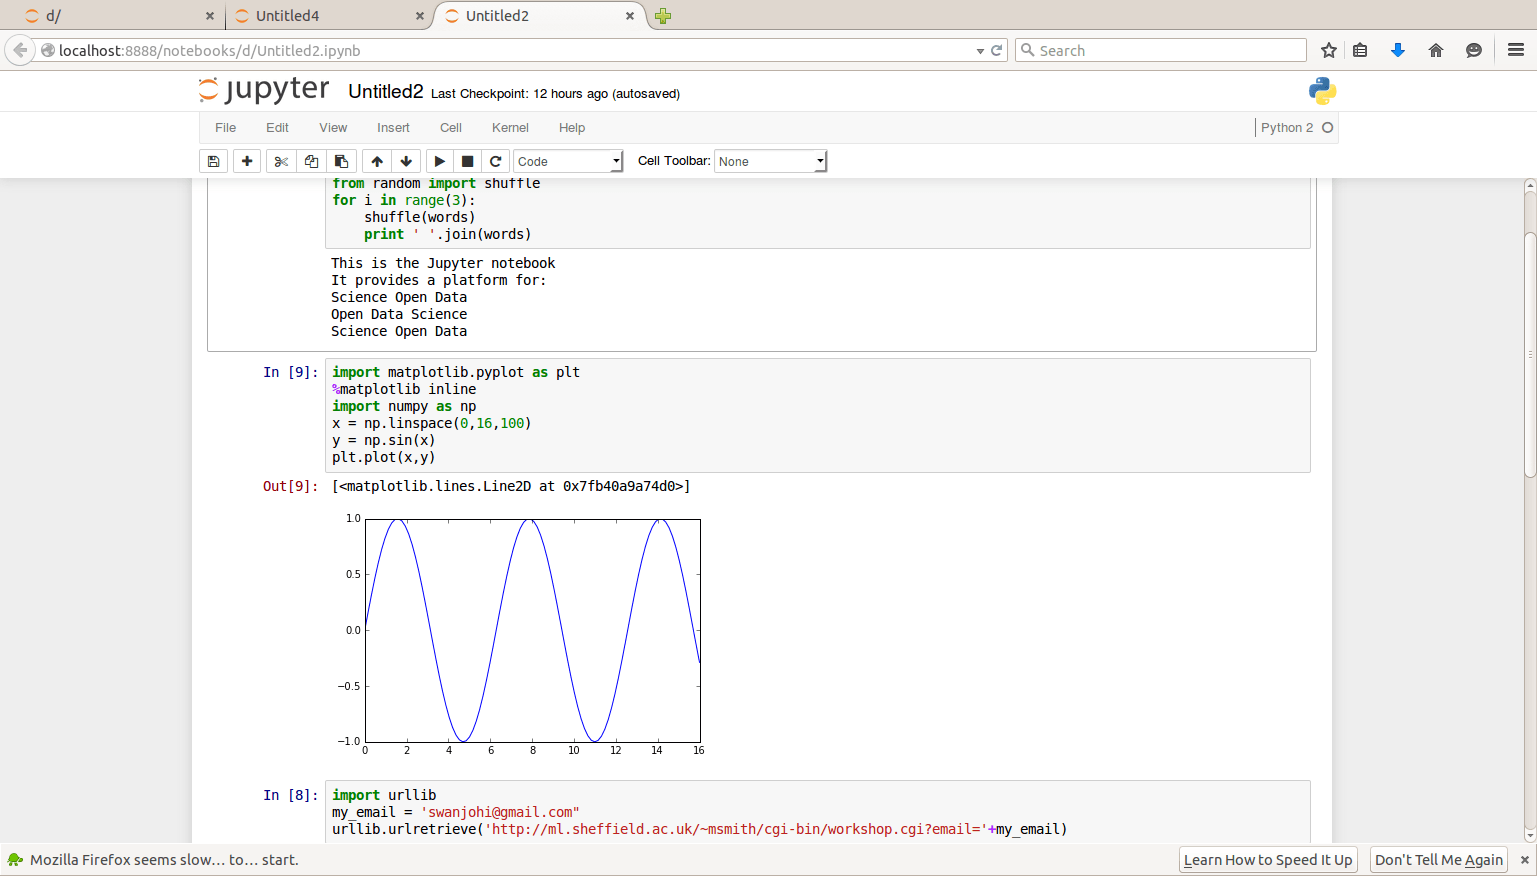 Writing codes in Jupyter